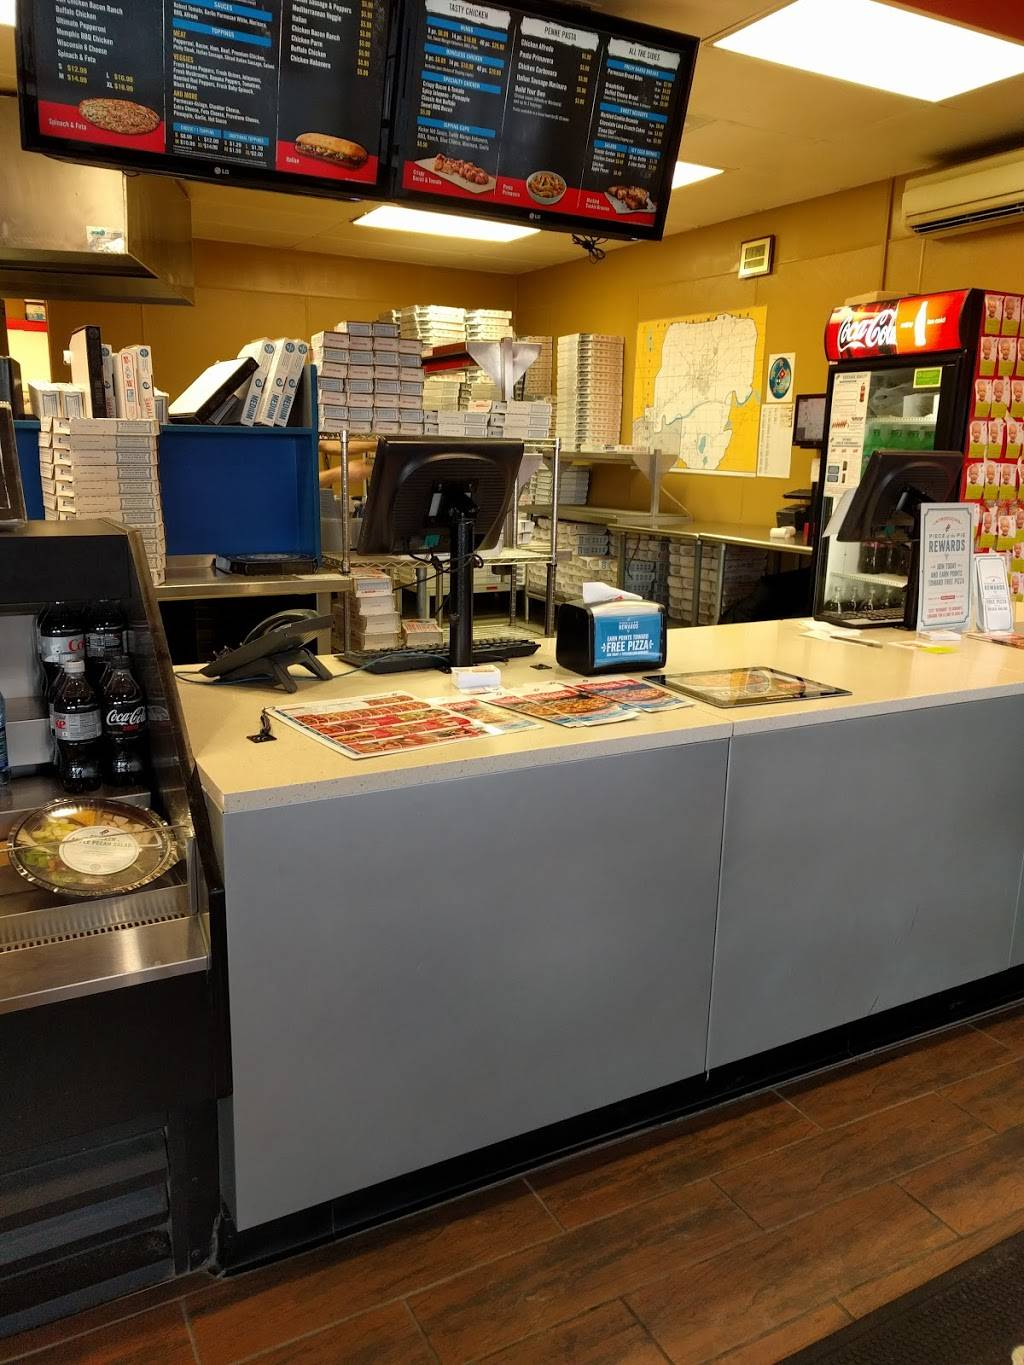 Dominos Pizza | meal delivery | 118 Ferry St, Sedro-Woolley, WA 98284, USA | 3608551000 OR +1 360-855-1000